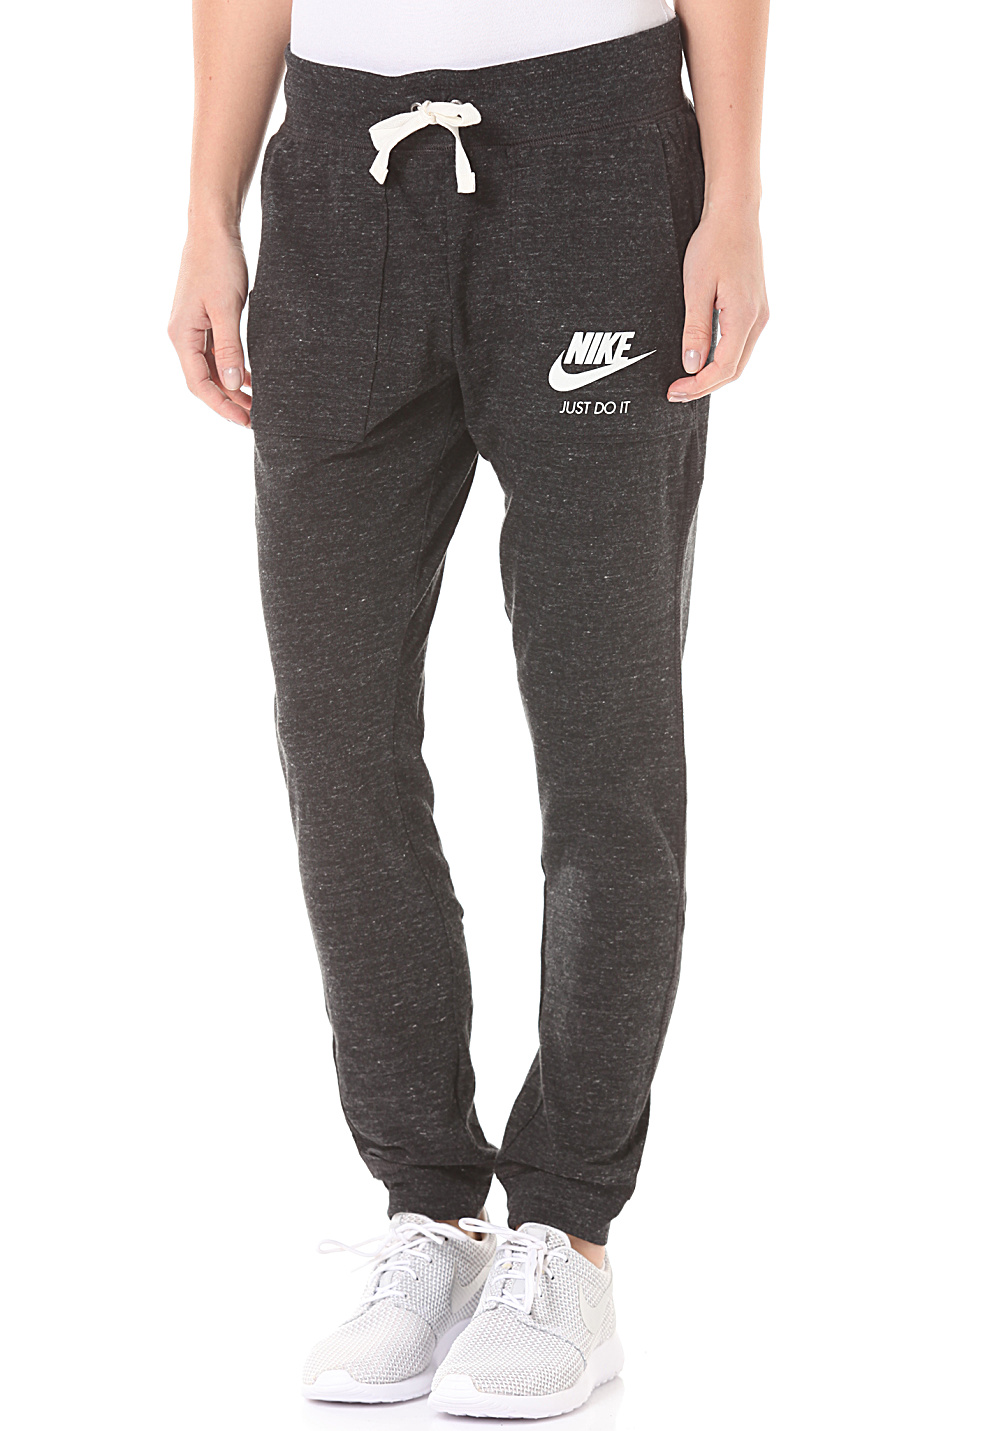 nike sportswear gym vintage pantalon de surv tement pour femme noir planet sports. Black Bedroom Furniture Sets. Home Design Ideas